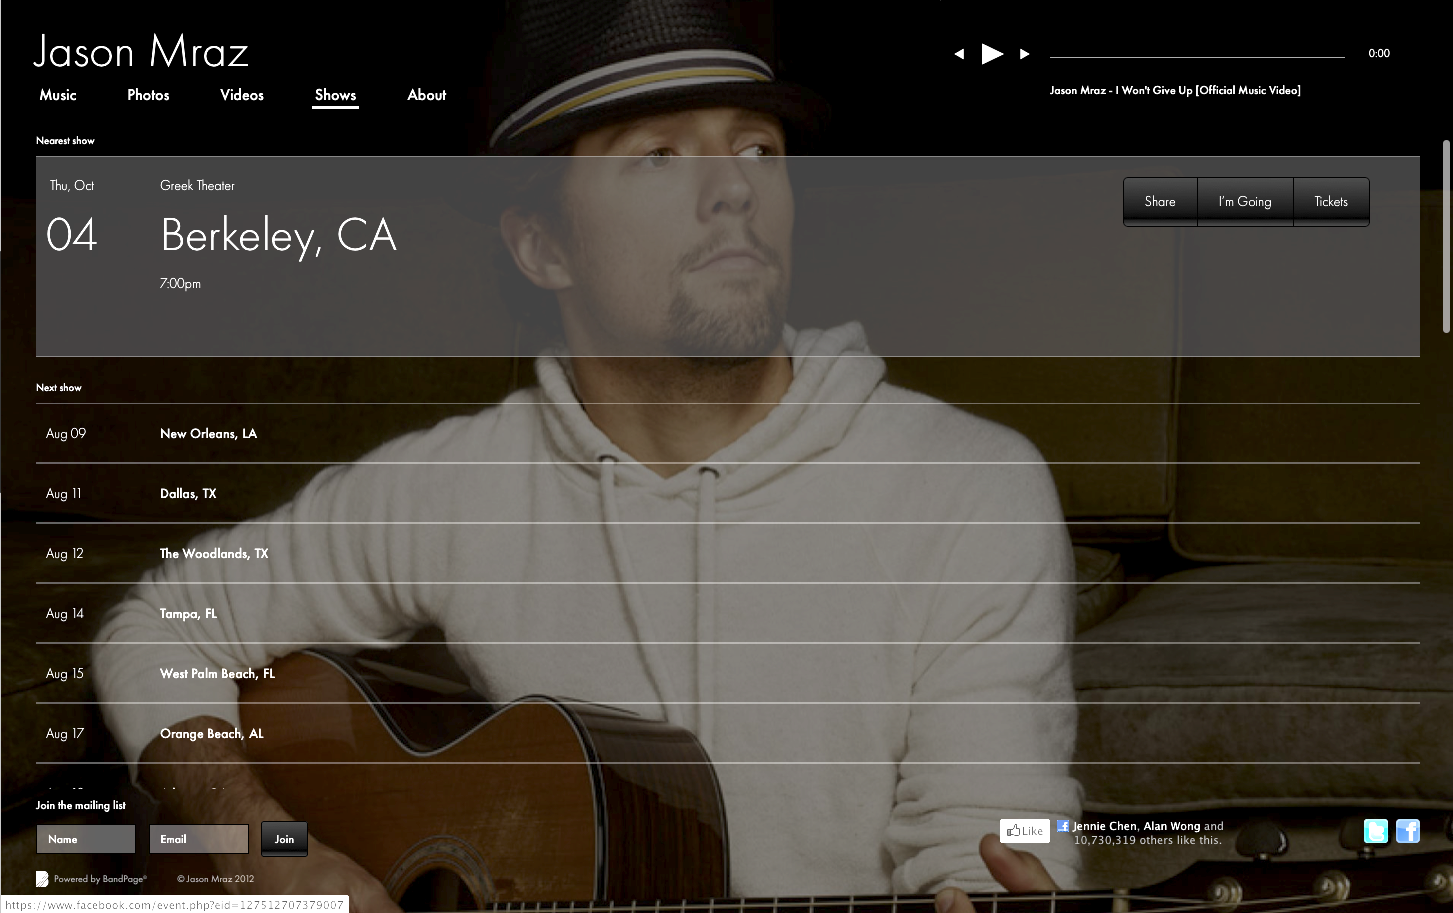 Jason Mraz - Website Extension